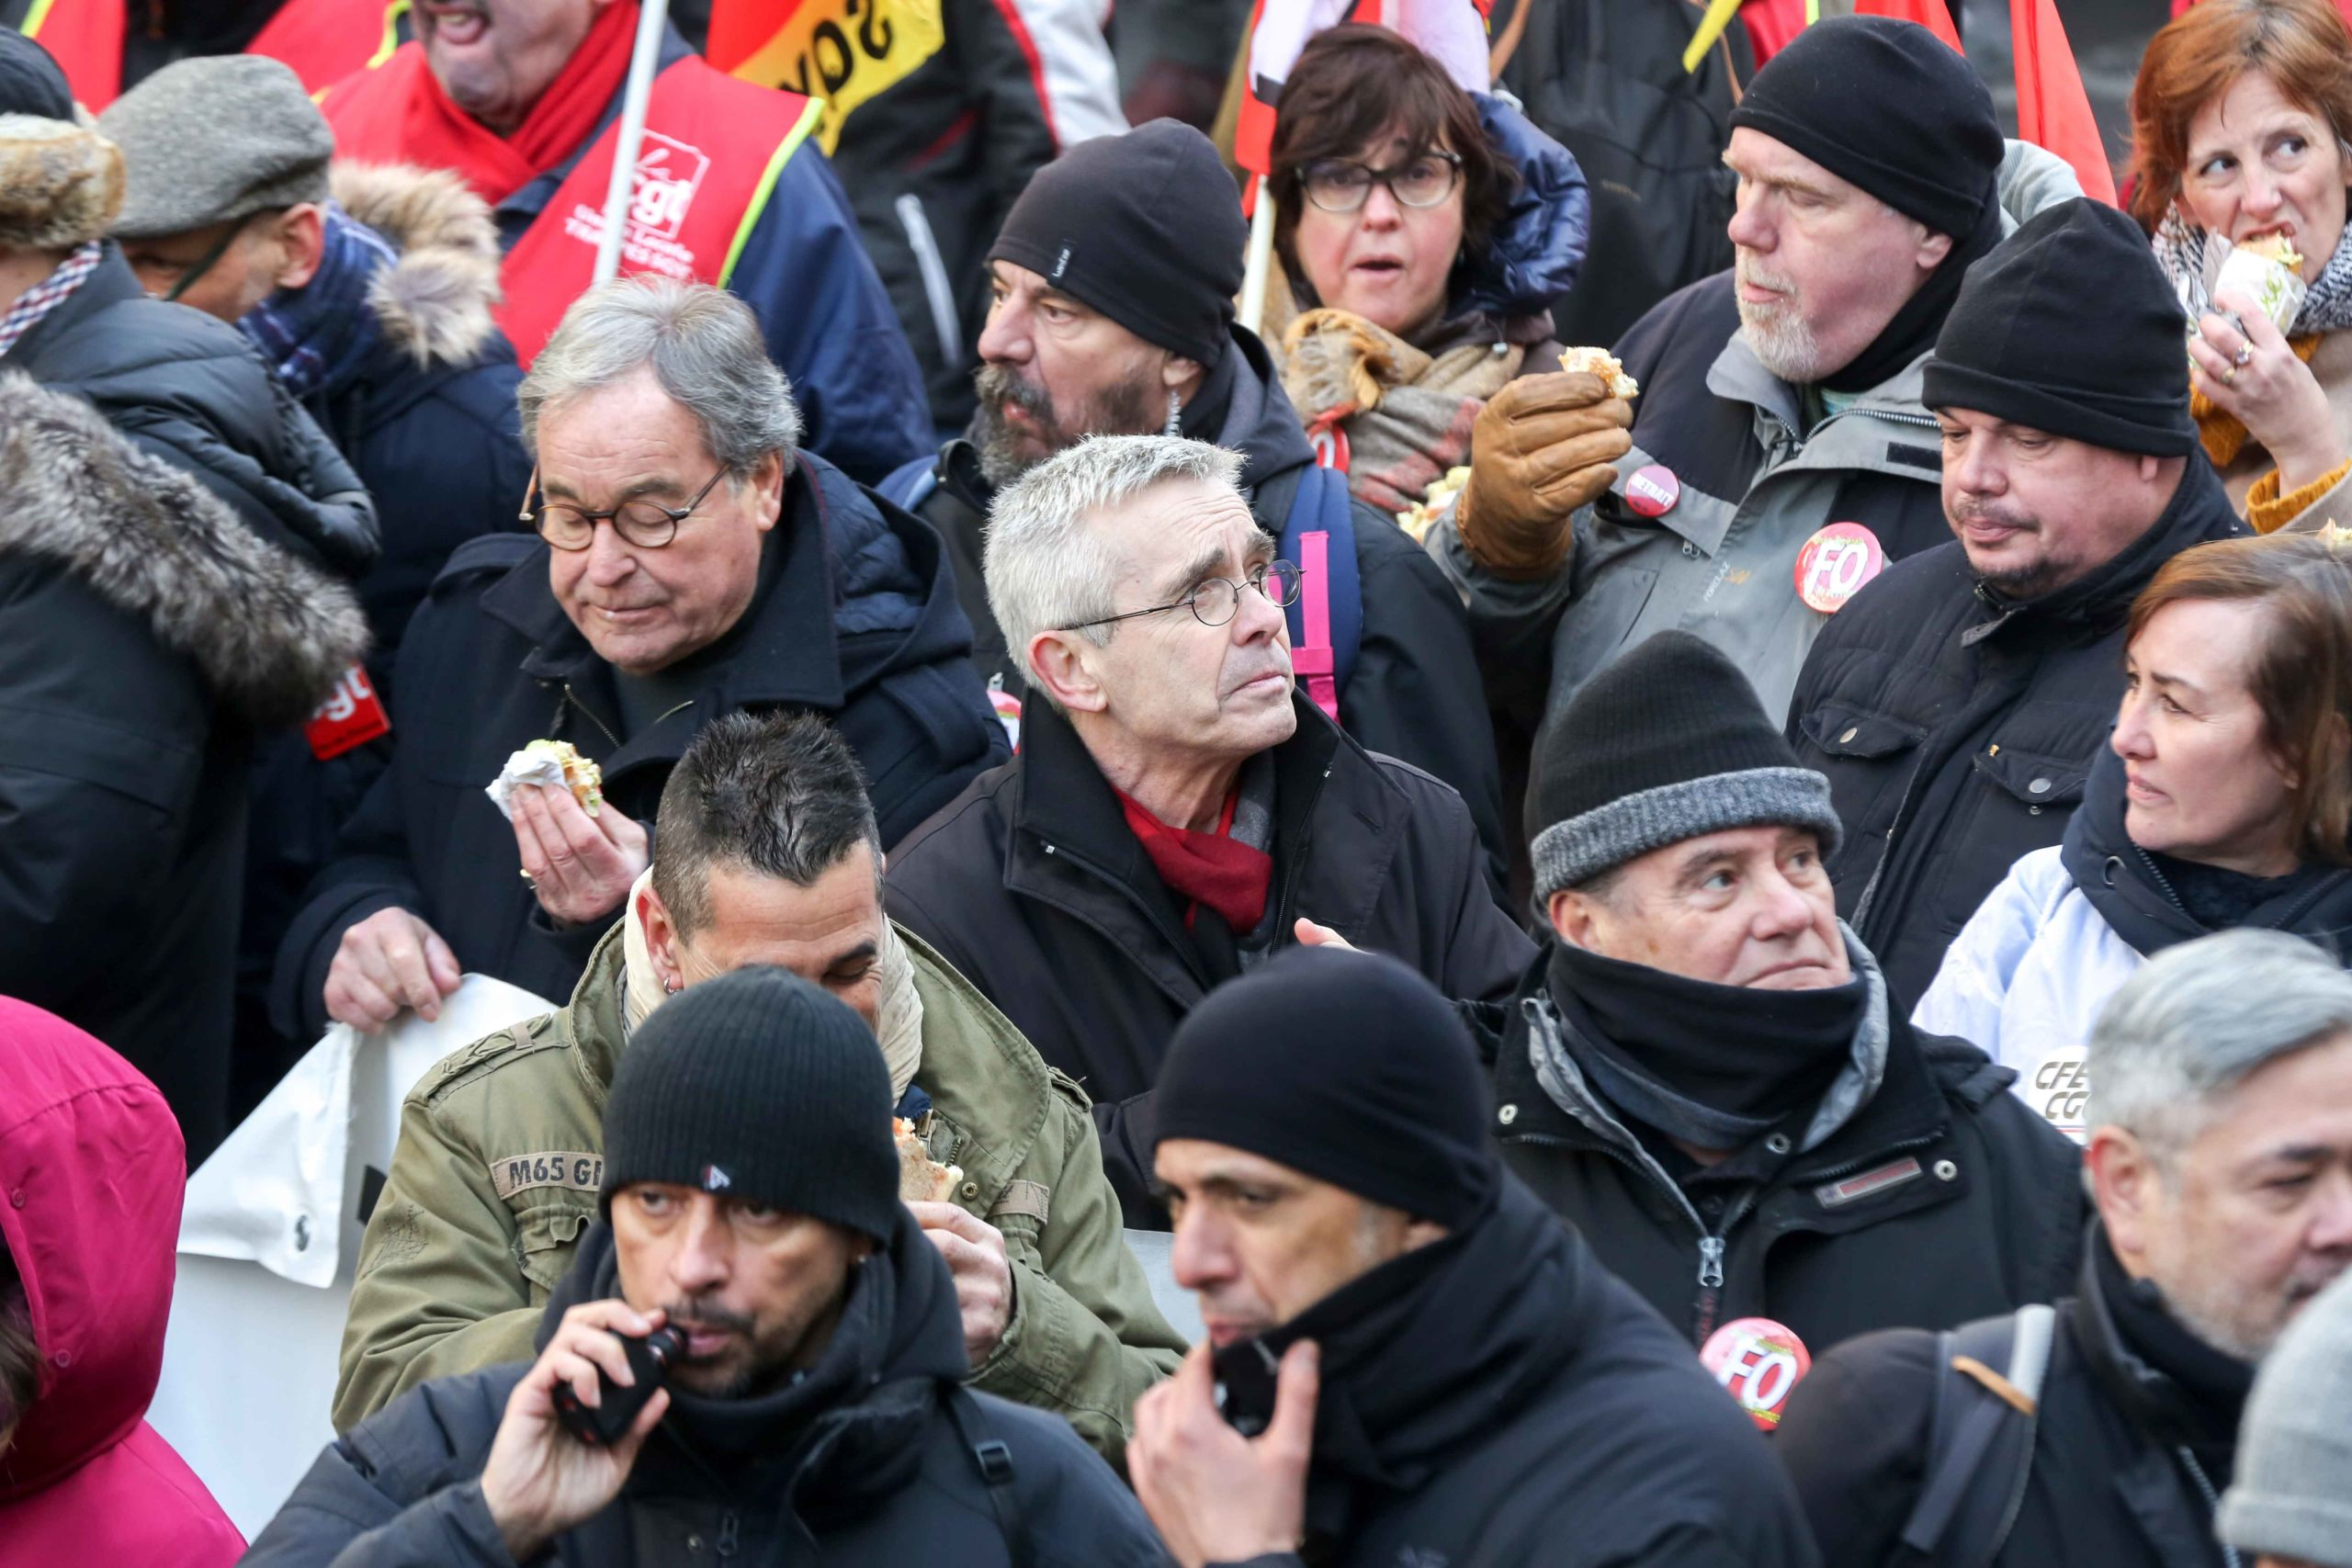 General secretary of French Union Force Ouvriere (FO) Yves Veyrier (C) takes part in a demonstration in Paris on January 24, 2020 during against the government pensions reform, which will be officially unveiled after weeks of strikes by unions warning that